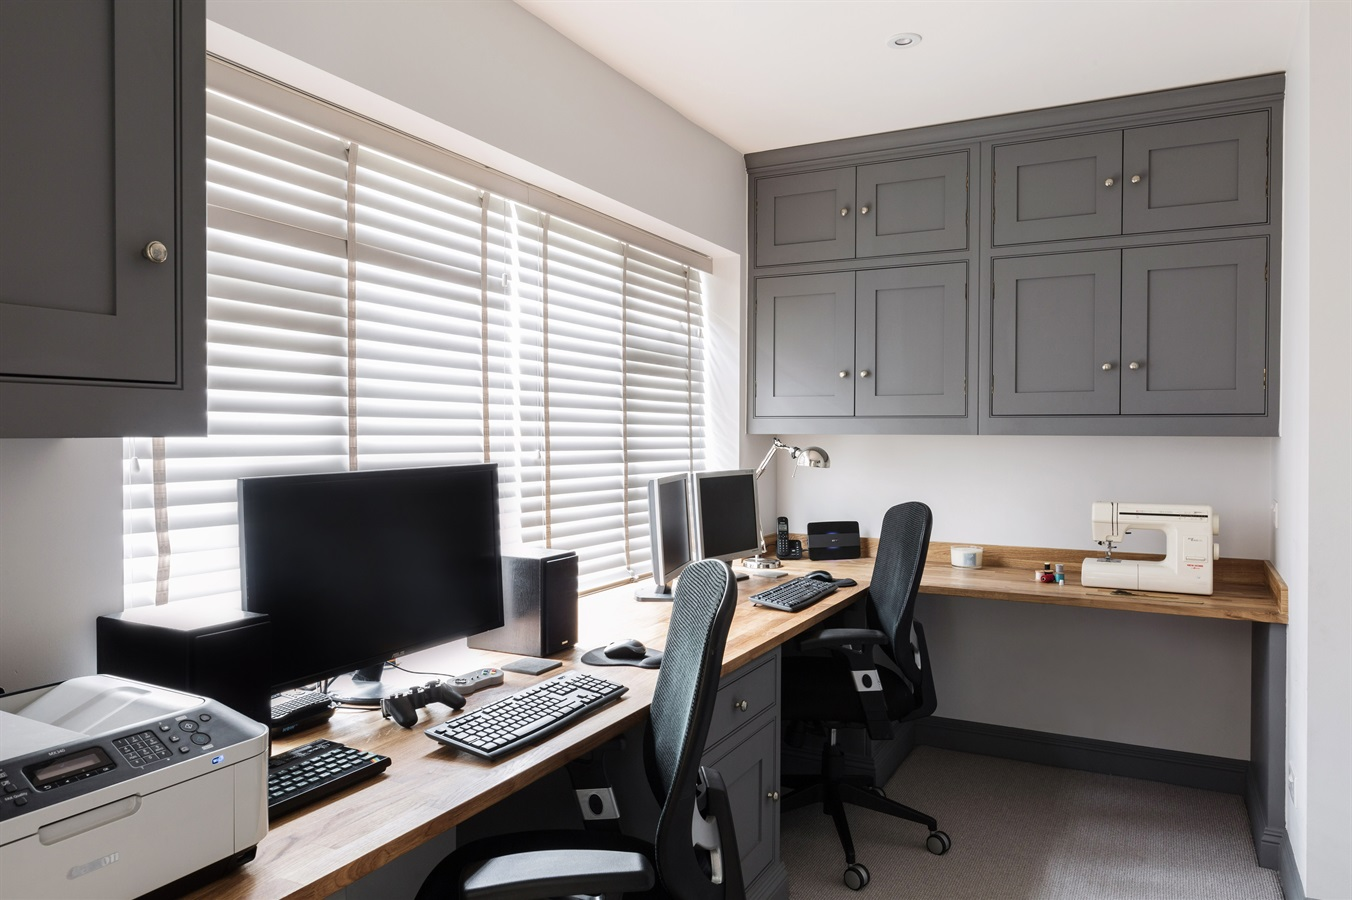 Burlanes Handmade Home Office Furniture - Burlanes bespoke home office furniture with ample storage space and wooden worktops.